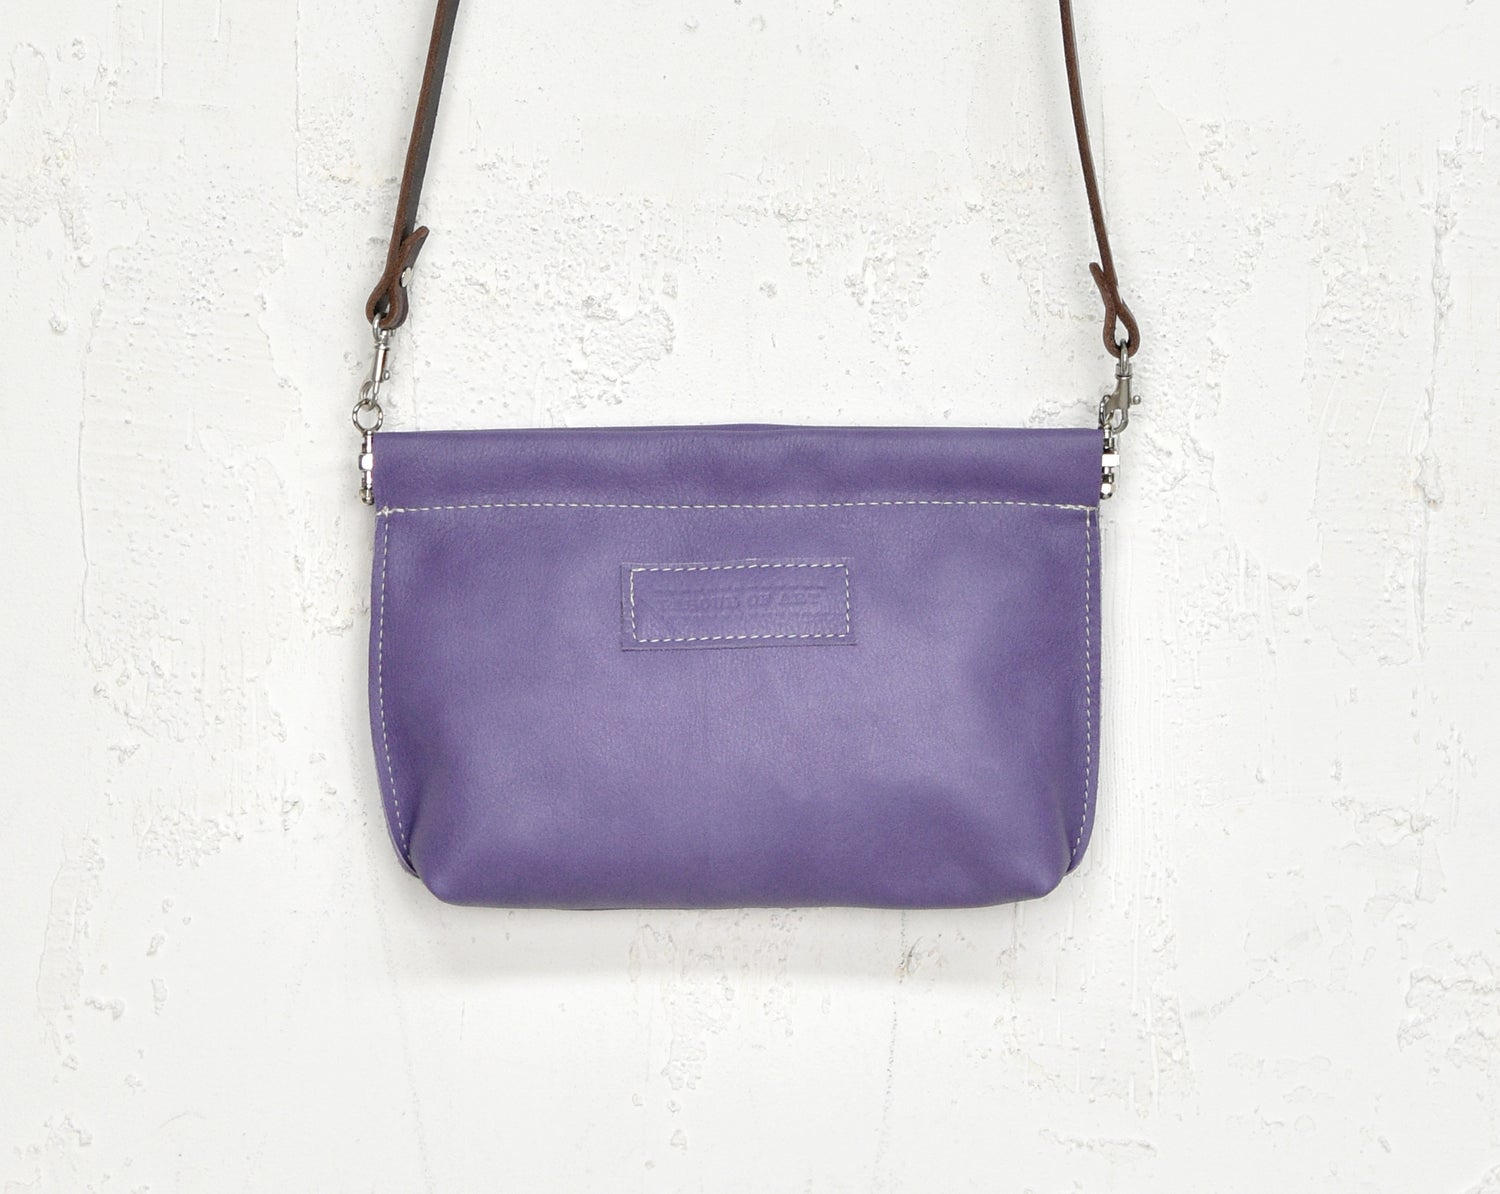 Image of Lavender Suede Leather Purse, Leather Clip Frame Pouch